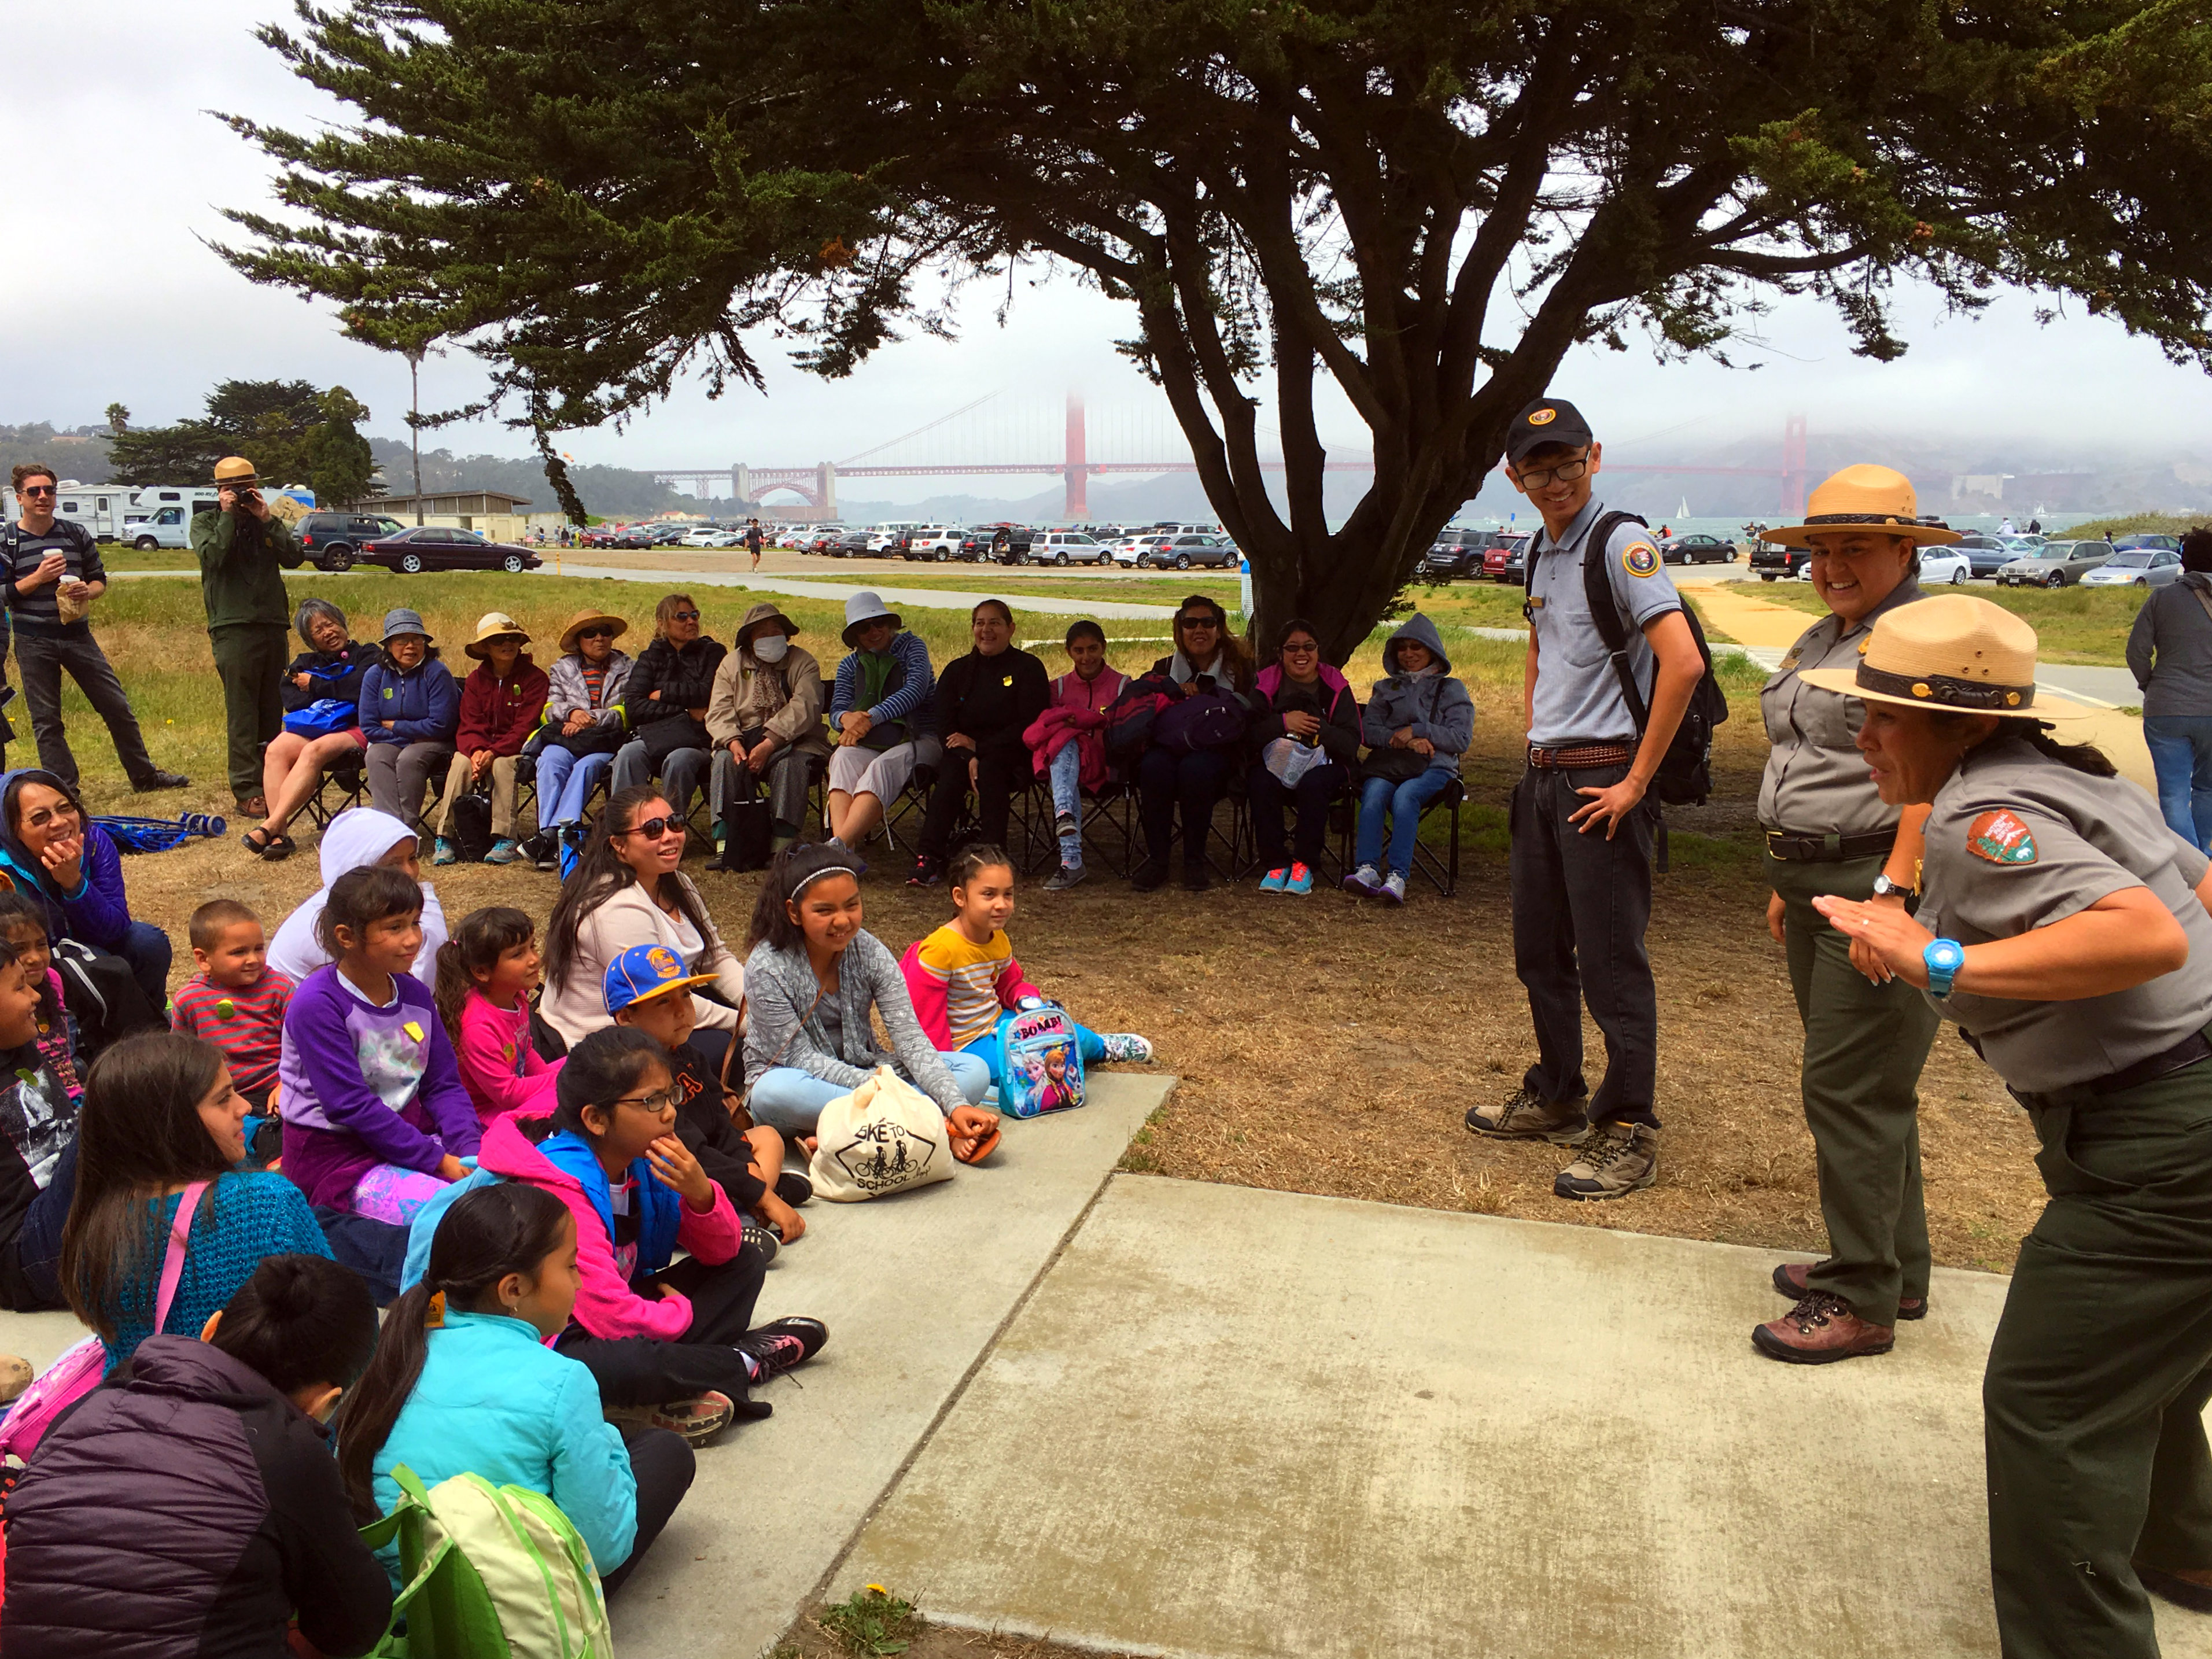 Park rangers explain flora and fauna at Chrissy Field to a group of visitors from the Mission District who took free shuttles to Chrissy Field.